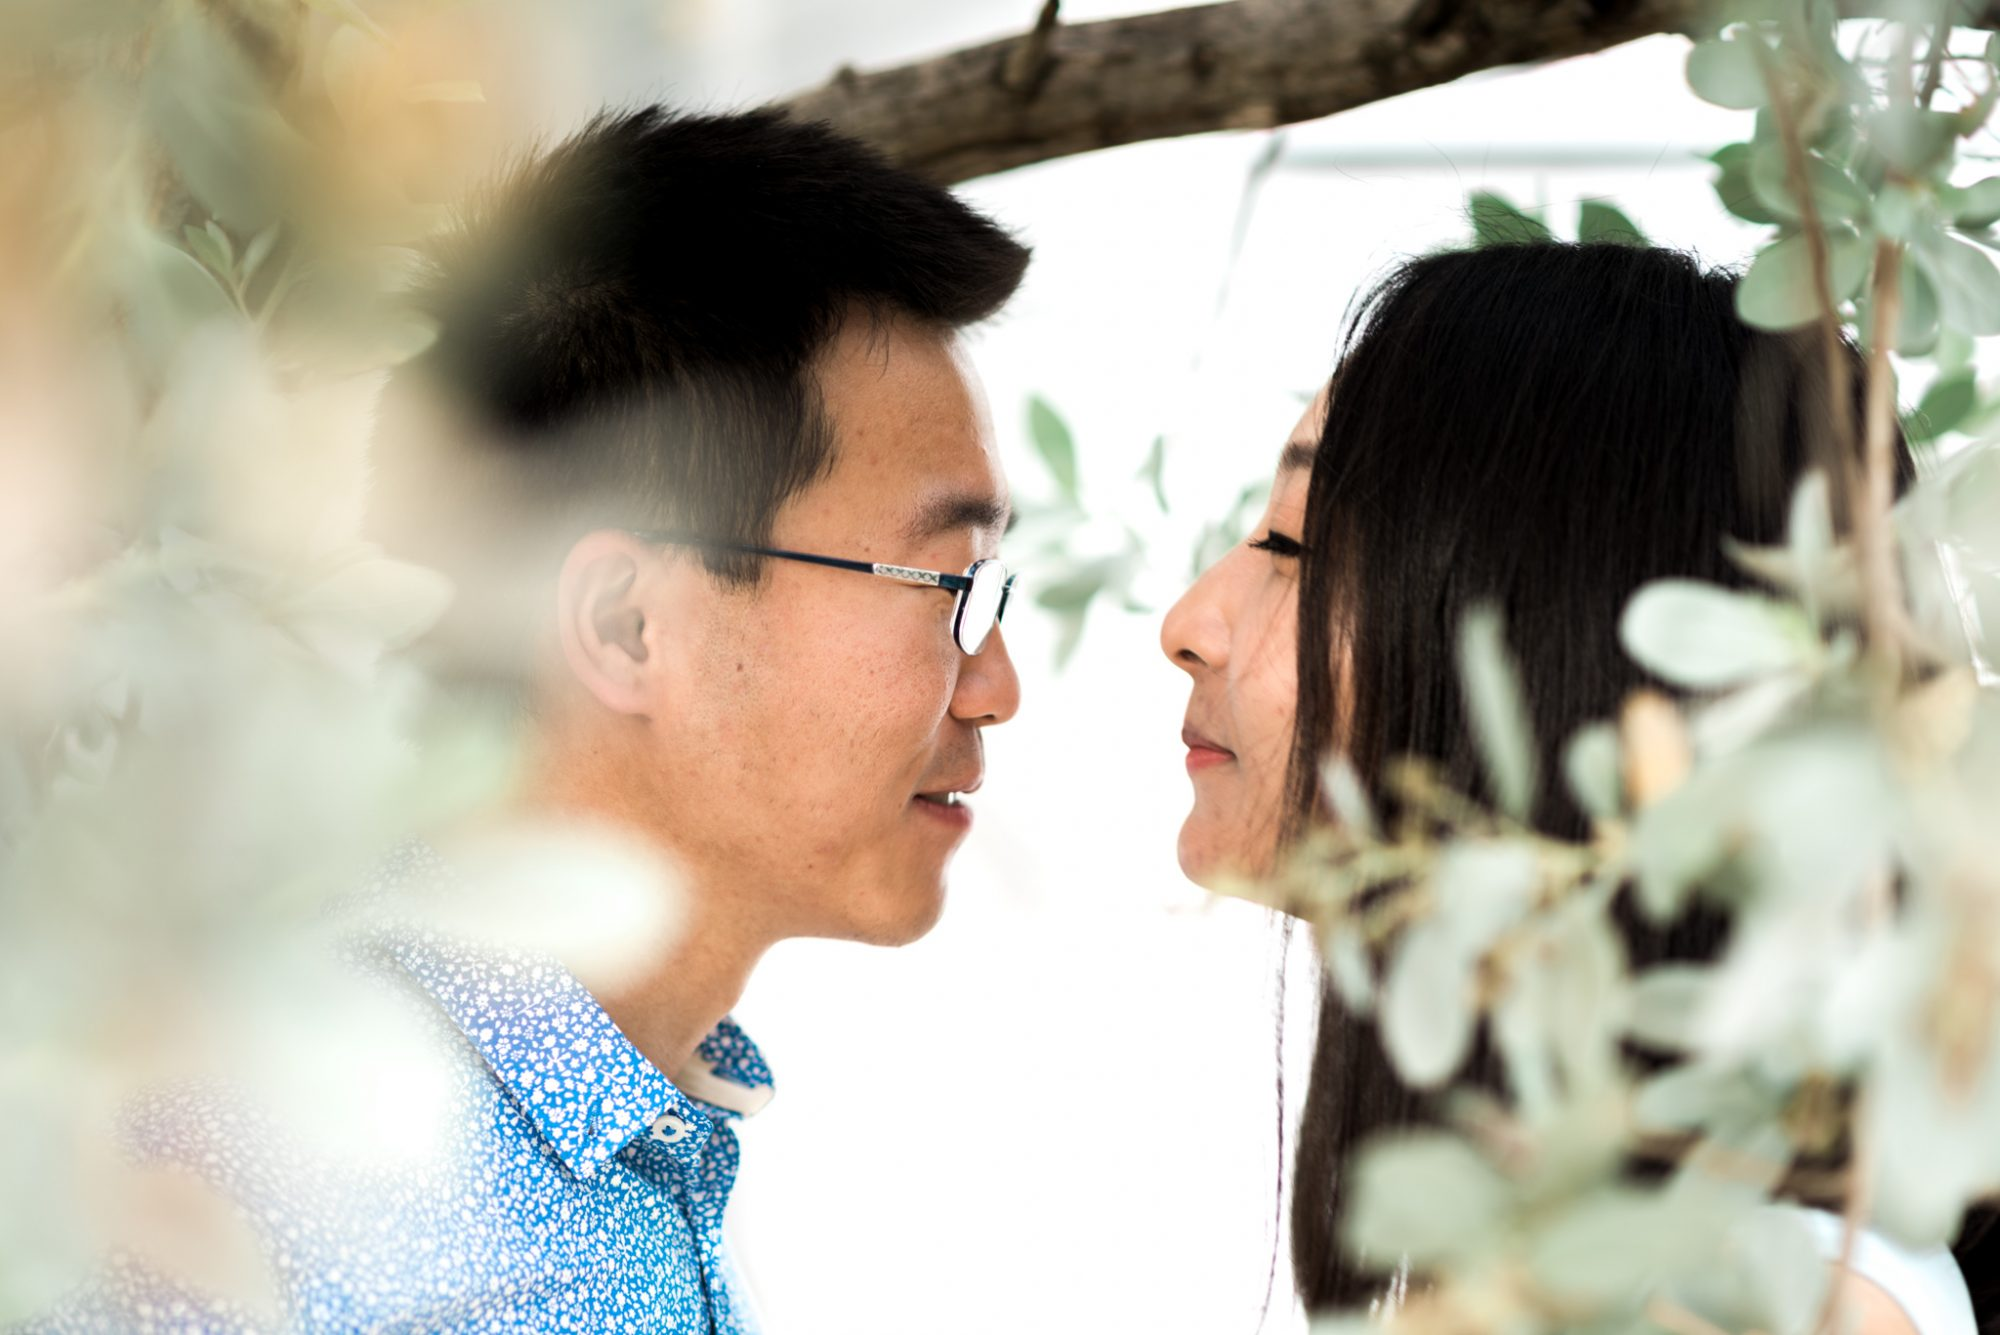 FBF2567 - Xiao & Ying | Key West, FL | Engagement Sunset Session